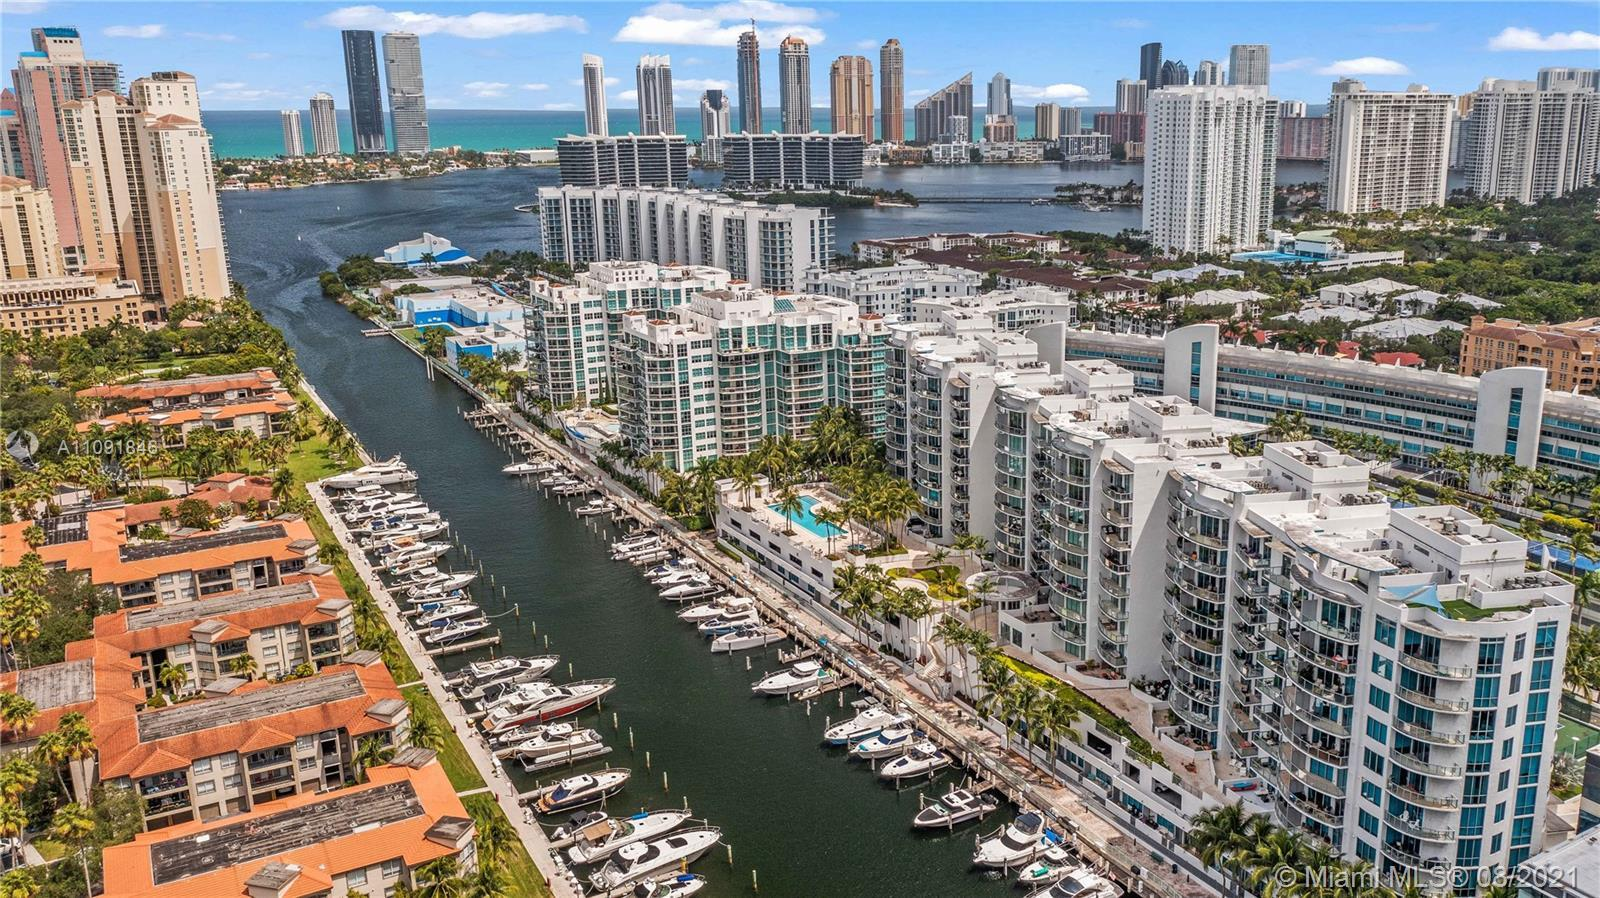 Luxury waterfront condo in the heart of Aventura. 3 spacious bedrooms, 3bathrooms, 2 balconies with